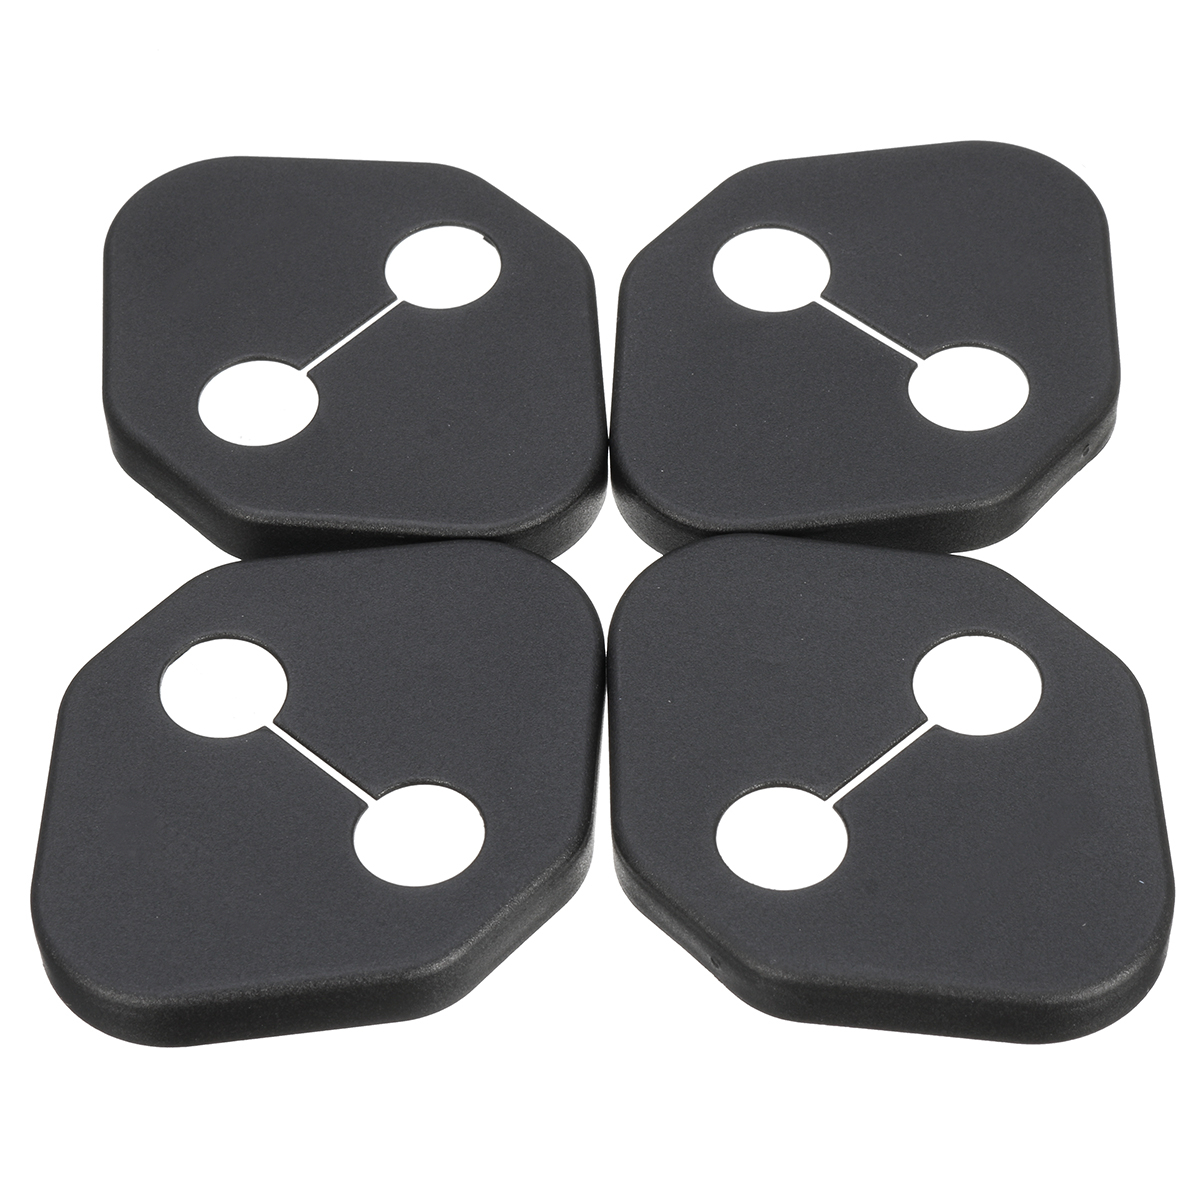 4Pcs Door Lock Ring Protective Car Cover Case For